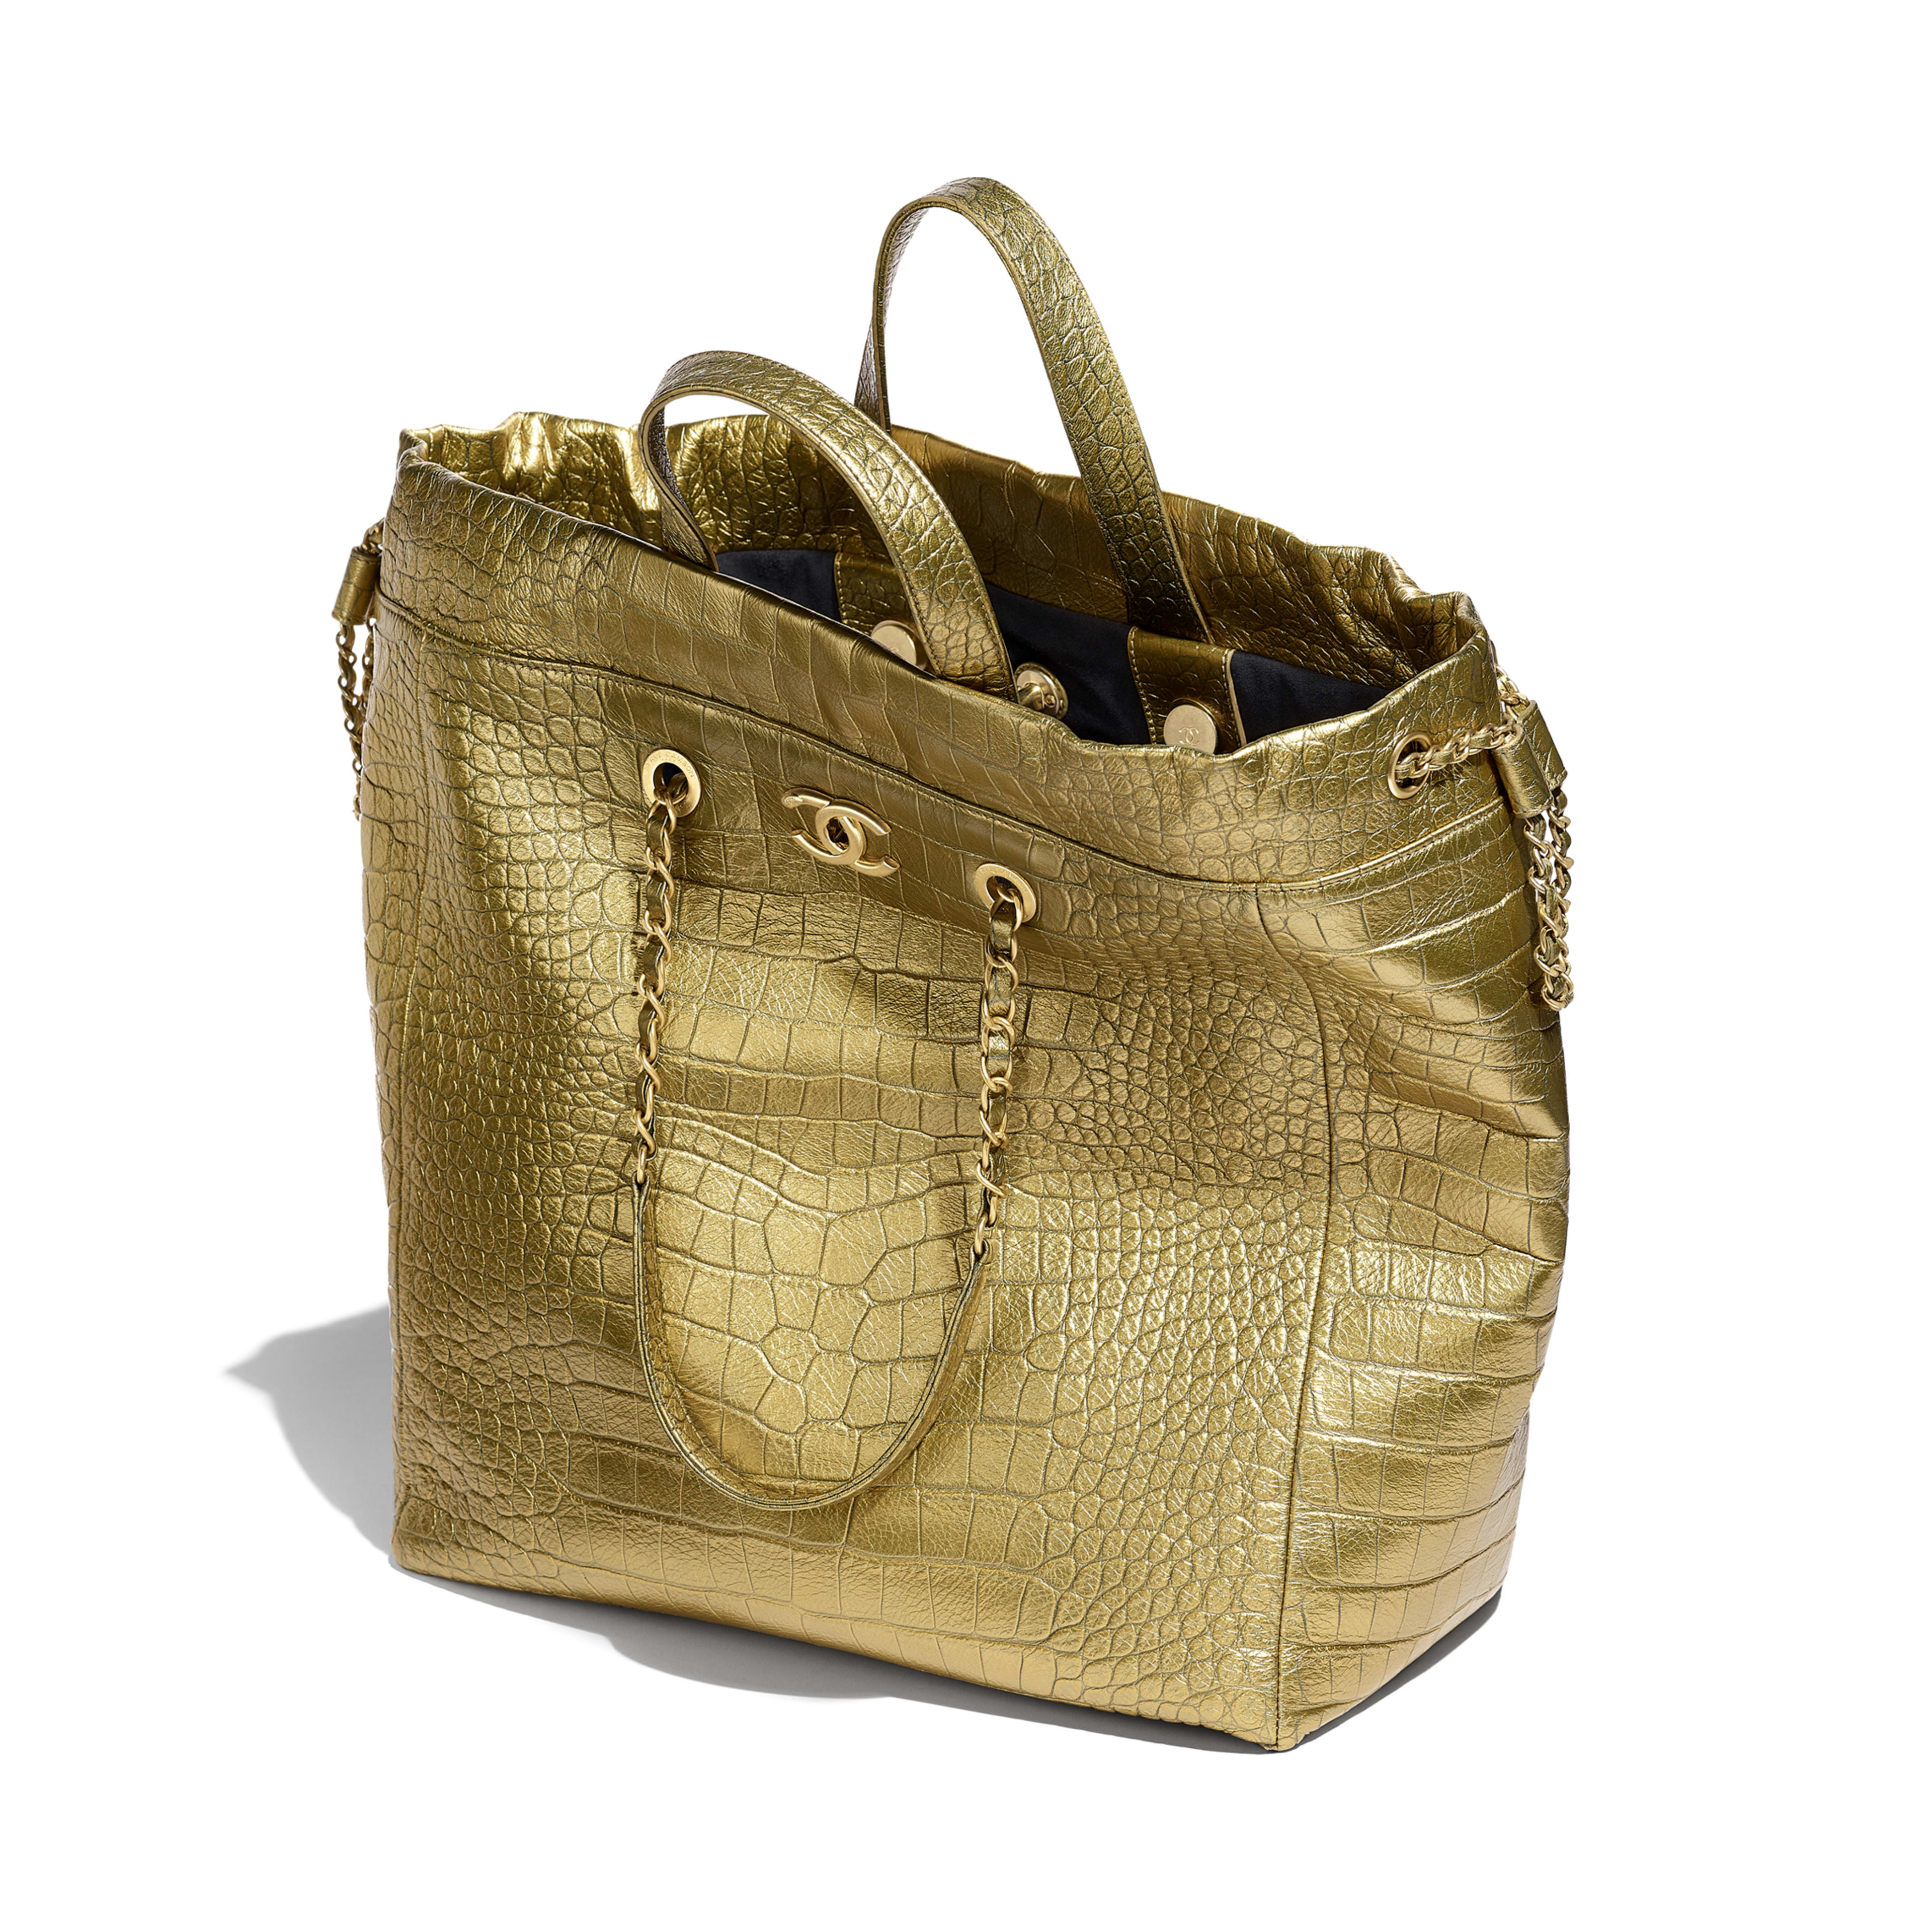 Large Shopping Bag - Gold - Metallic Crocodile Embossed Calfskin & Gold Metal - Other view - see full sized version